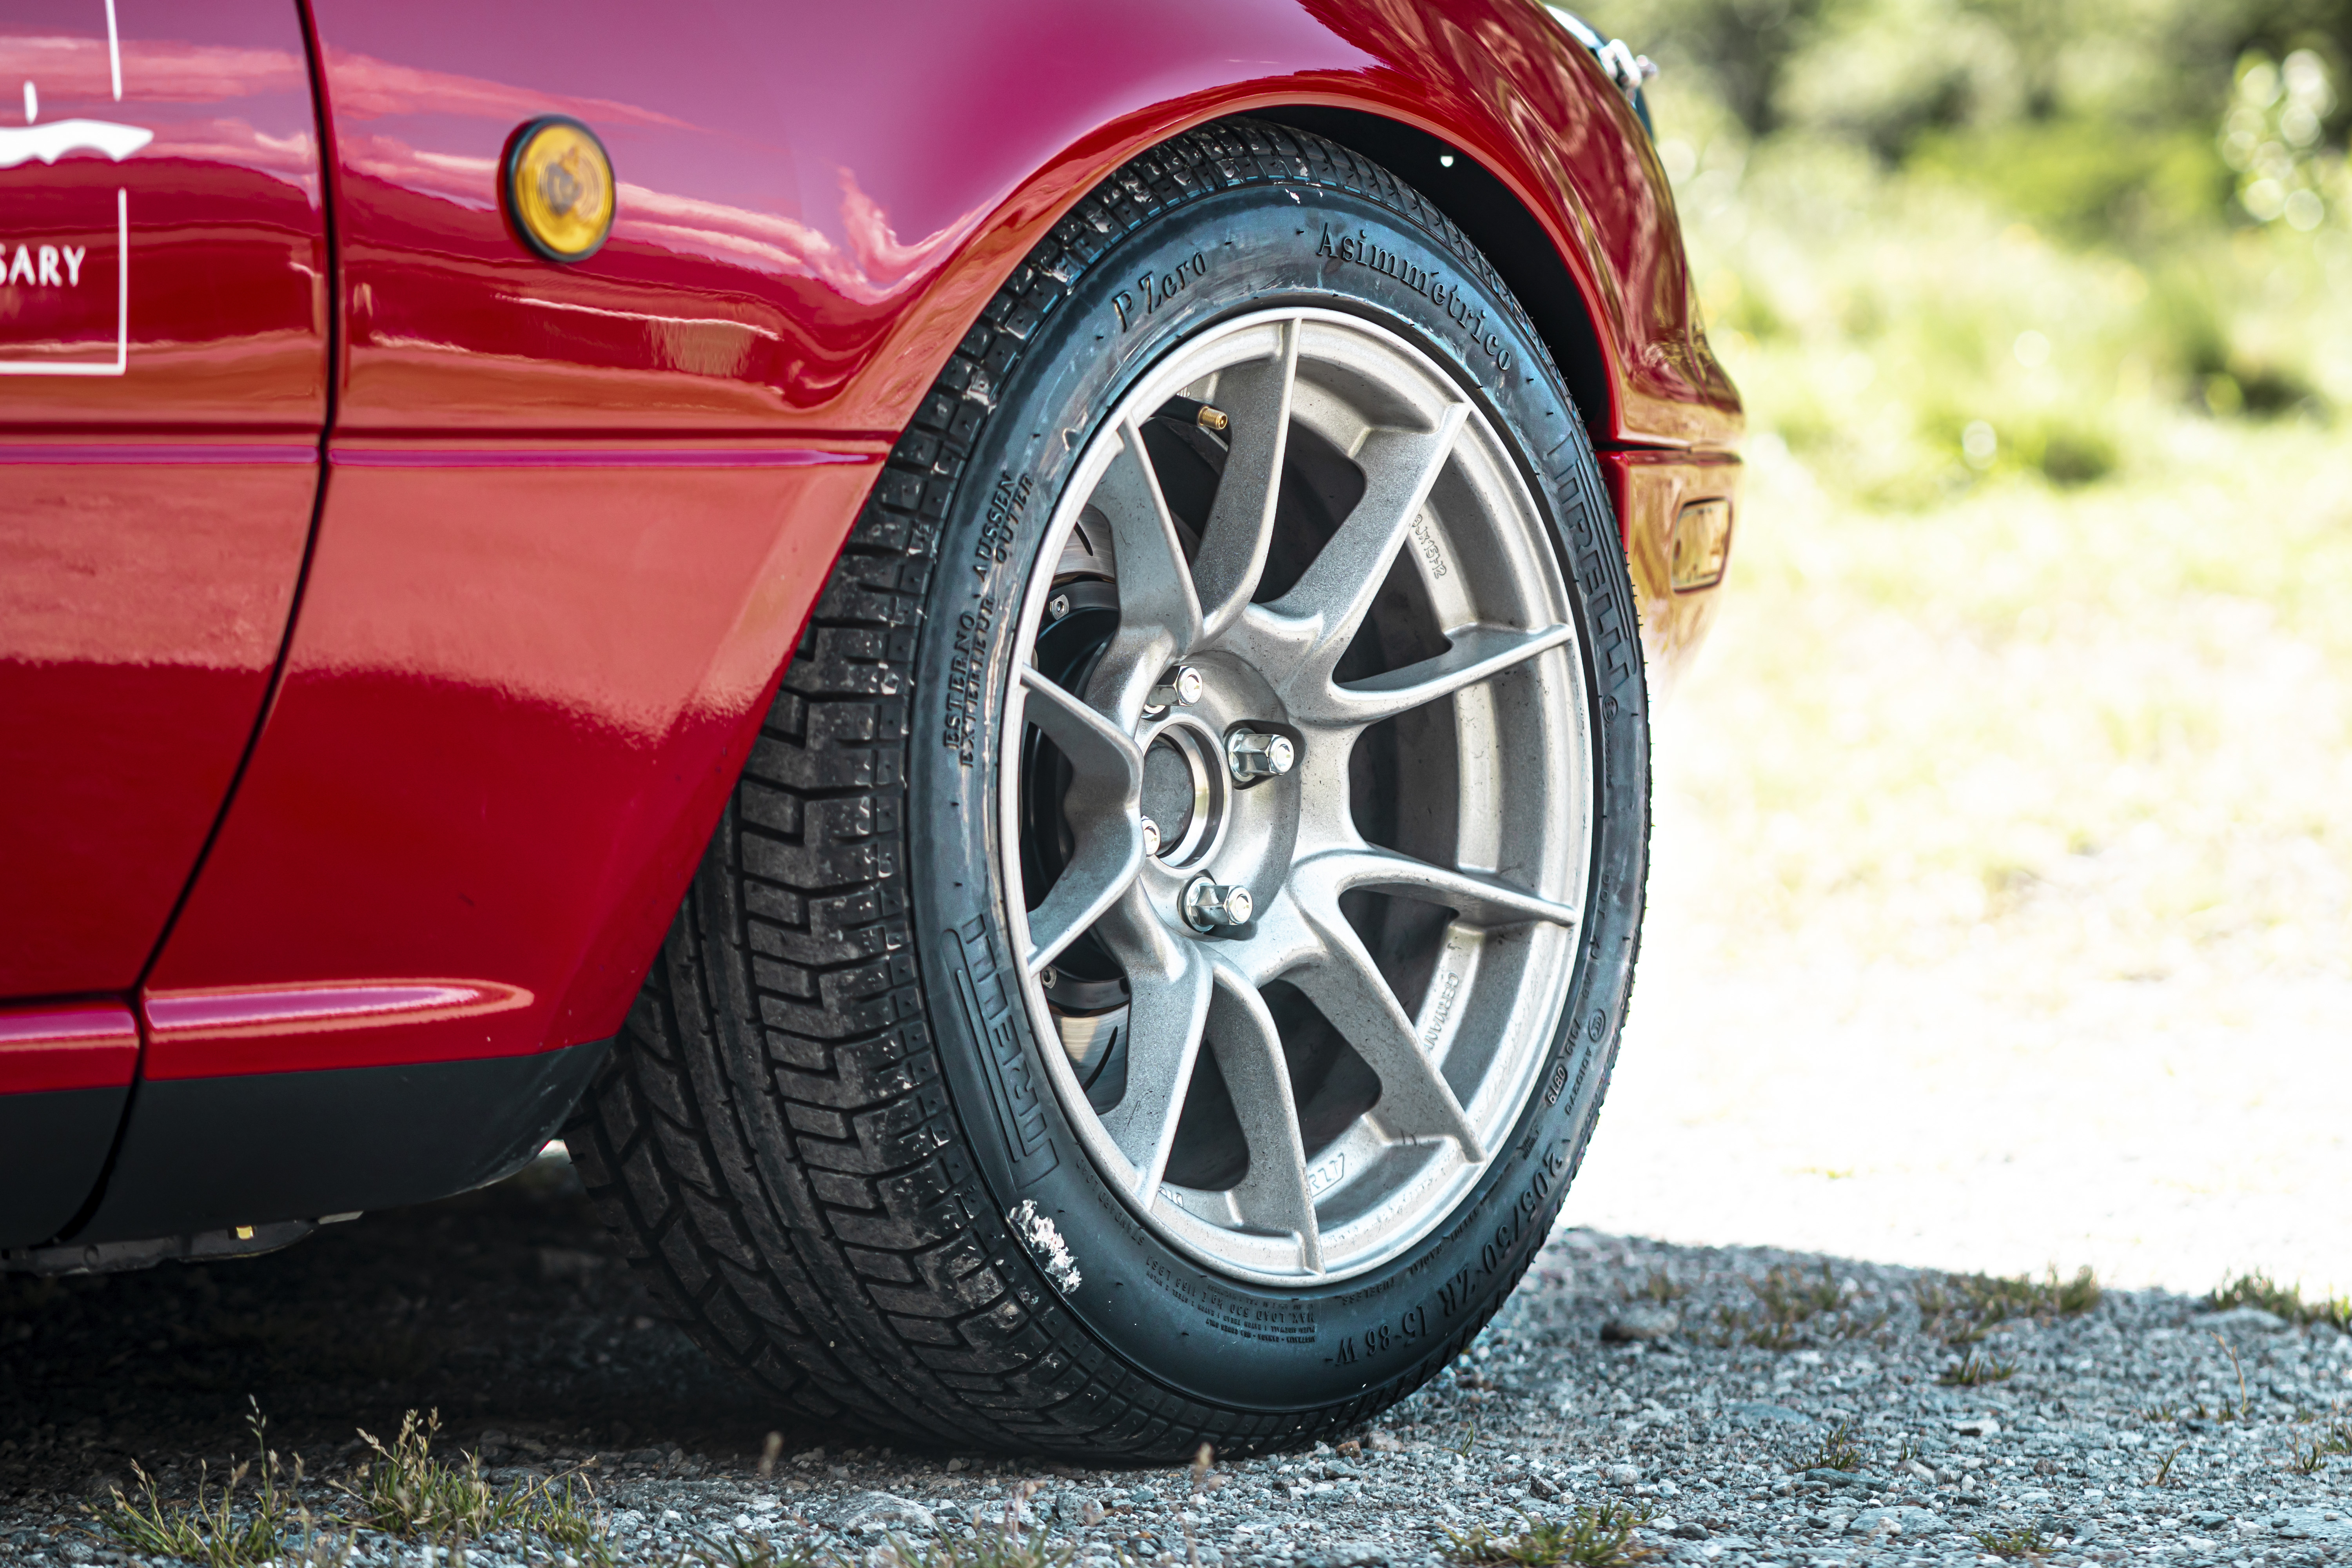 Vintage Miata claims record for most hairpin curves in 12